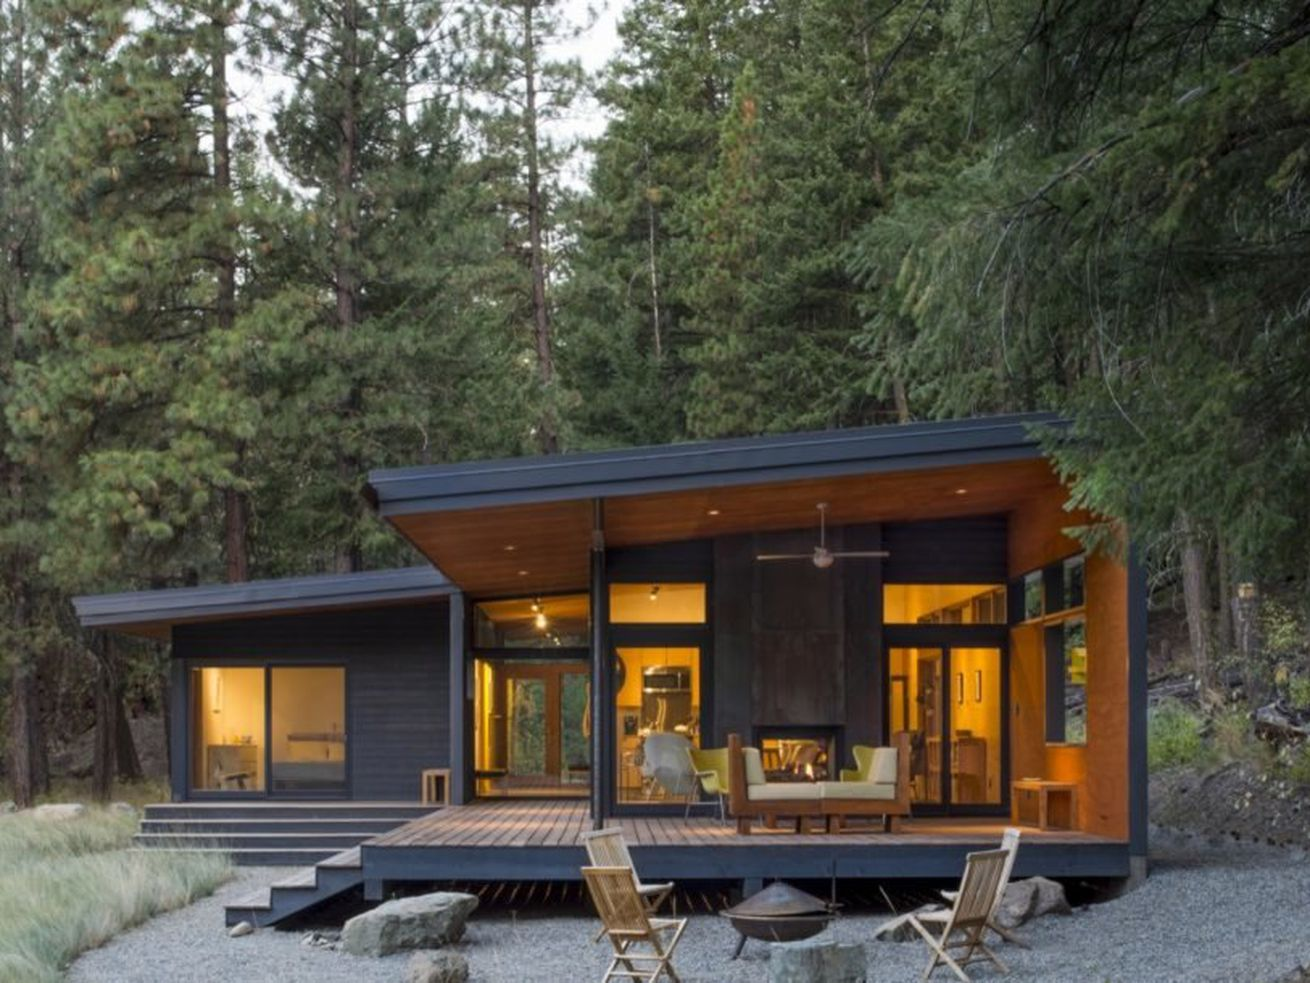 This midcentury modern-inspired cabin offers a cozy getaway